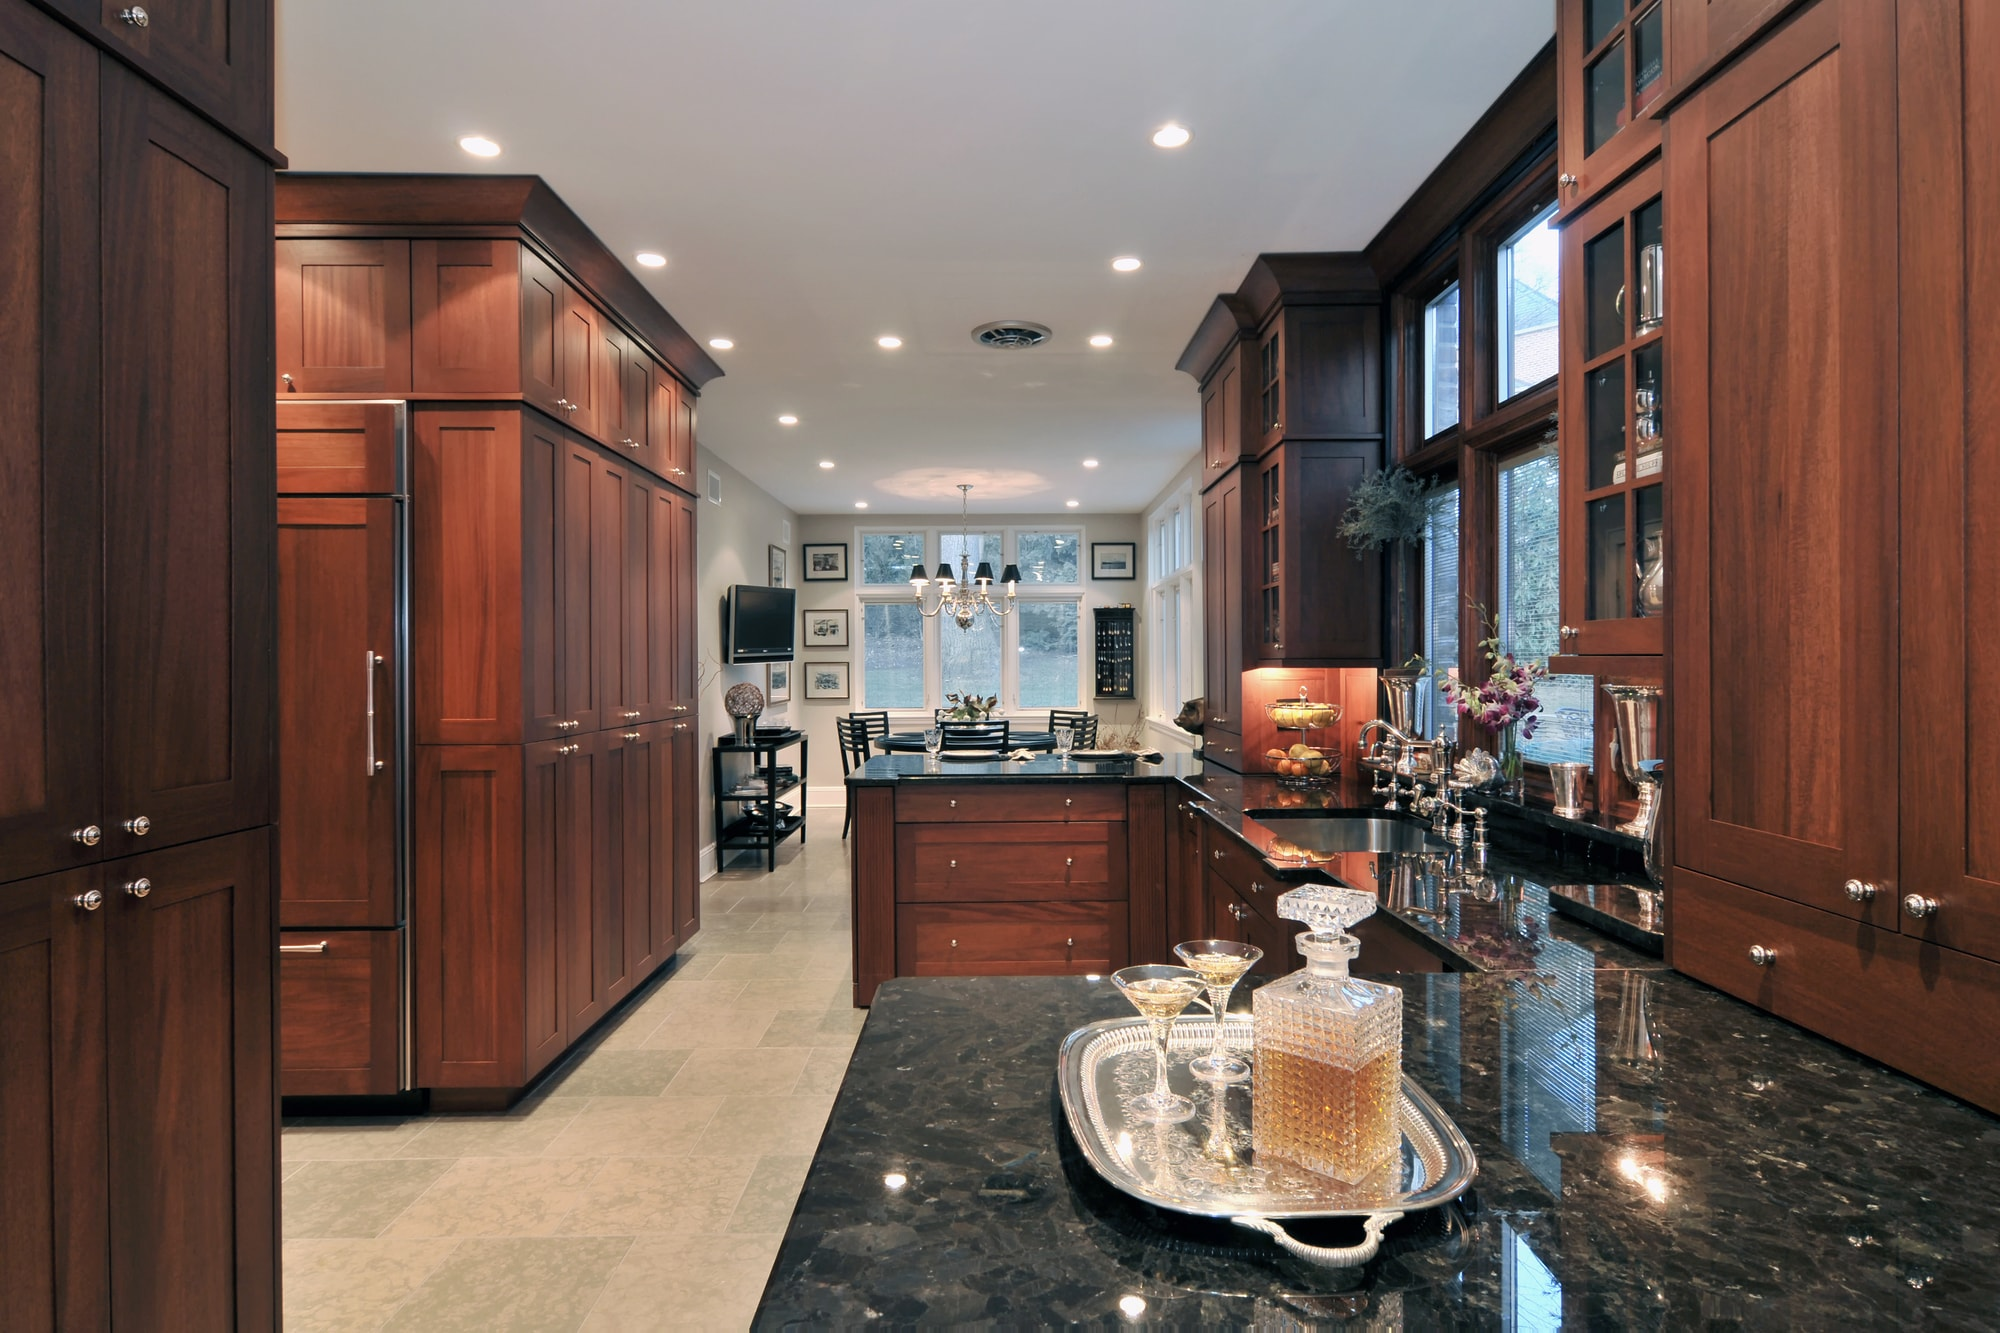 Transitional style kitchen with large cabinets